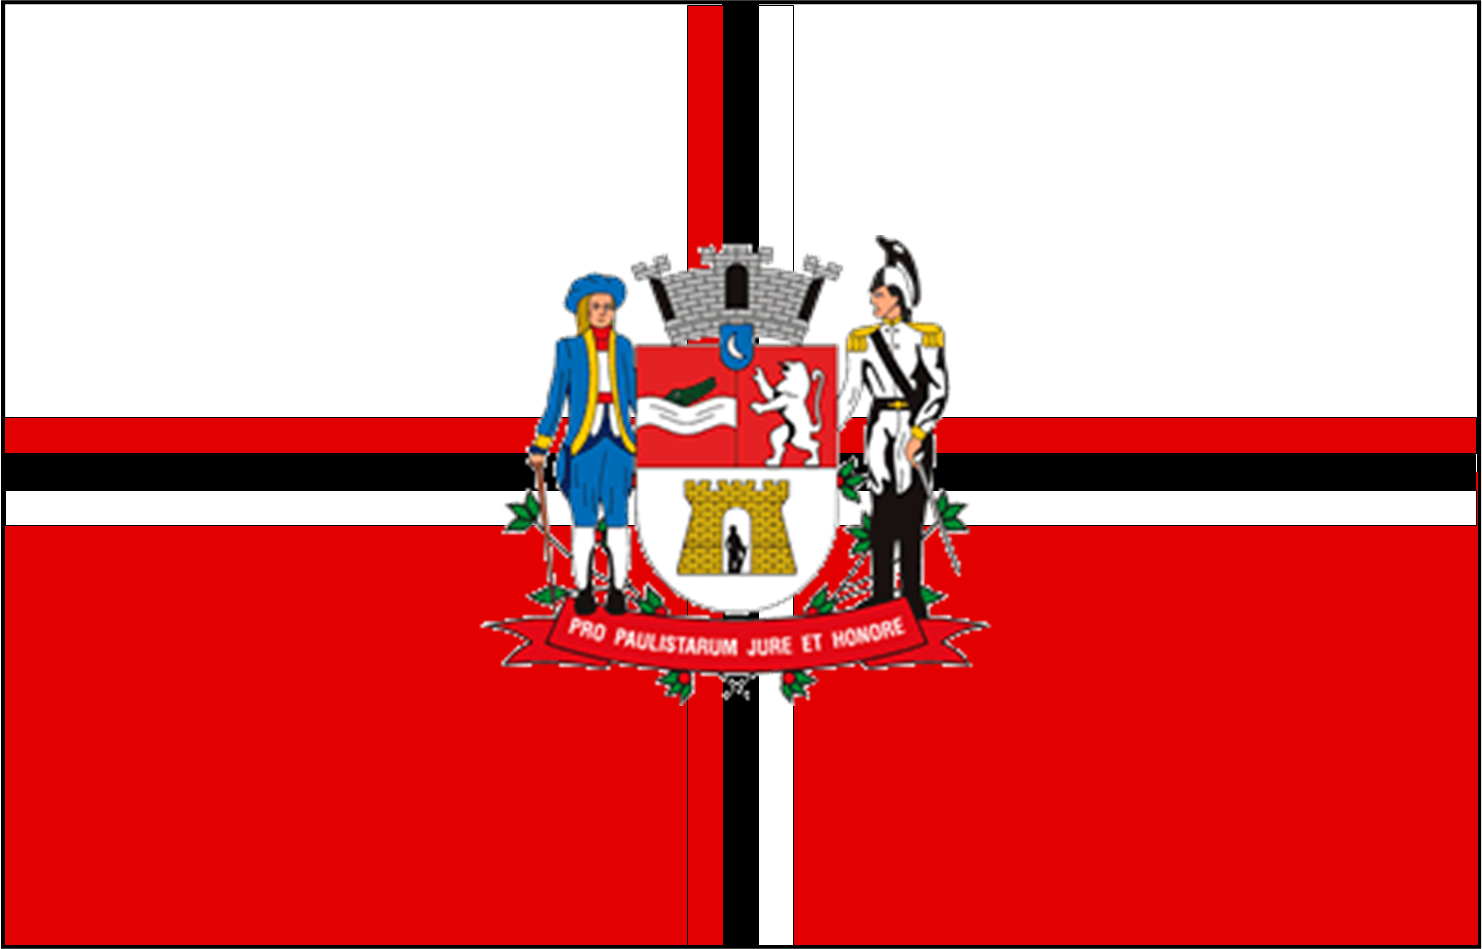 File:Jacarei flag.png - Wikimedia Commons